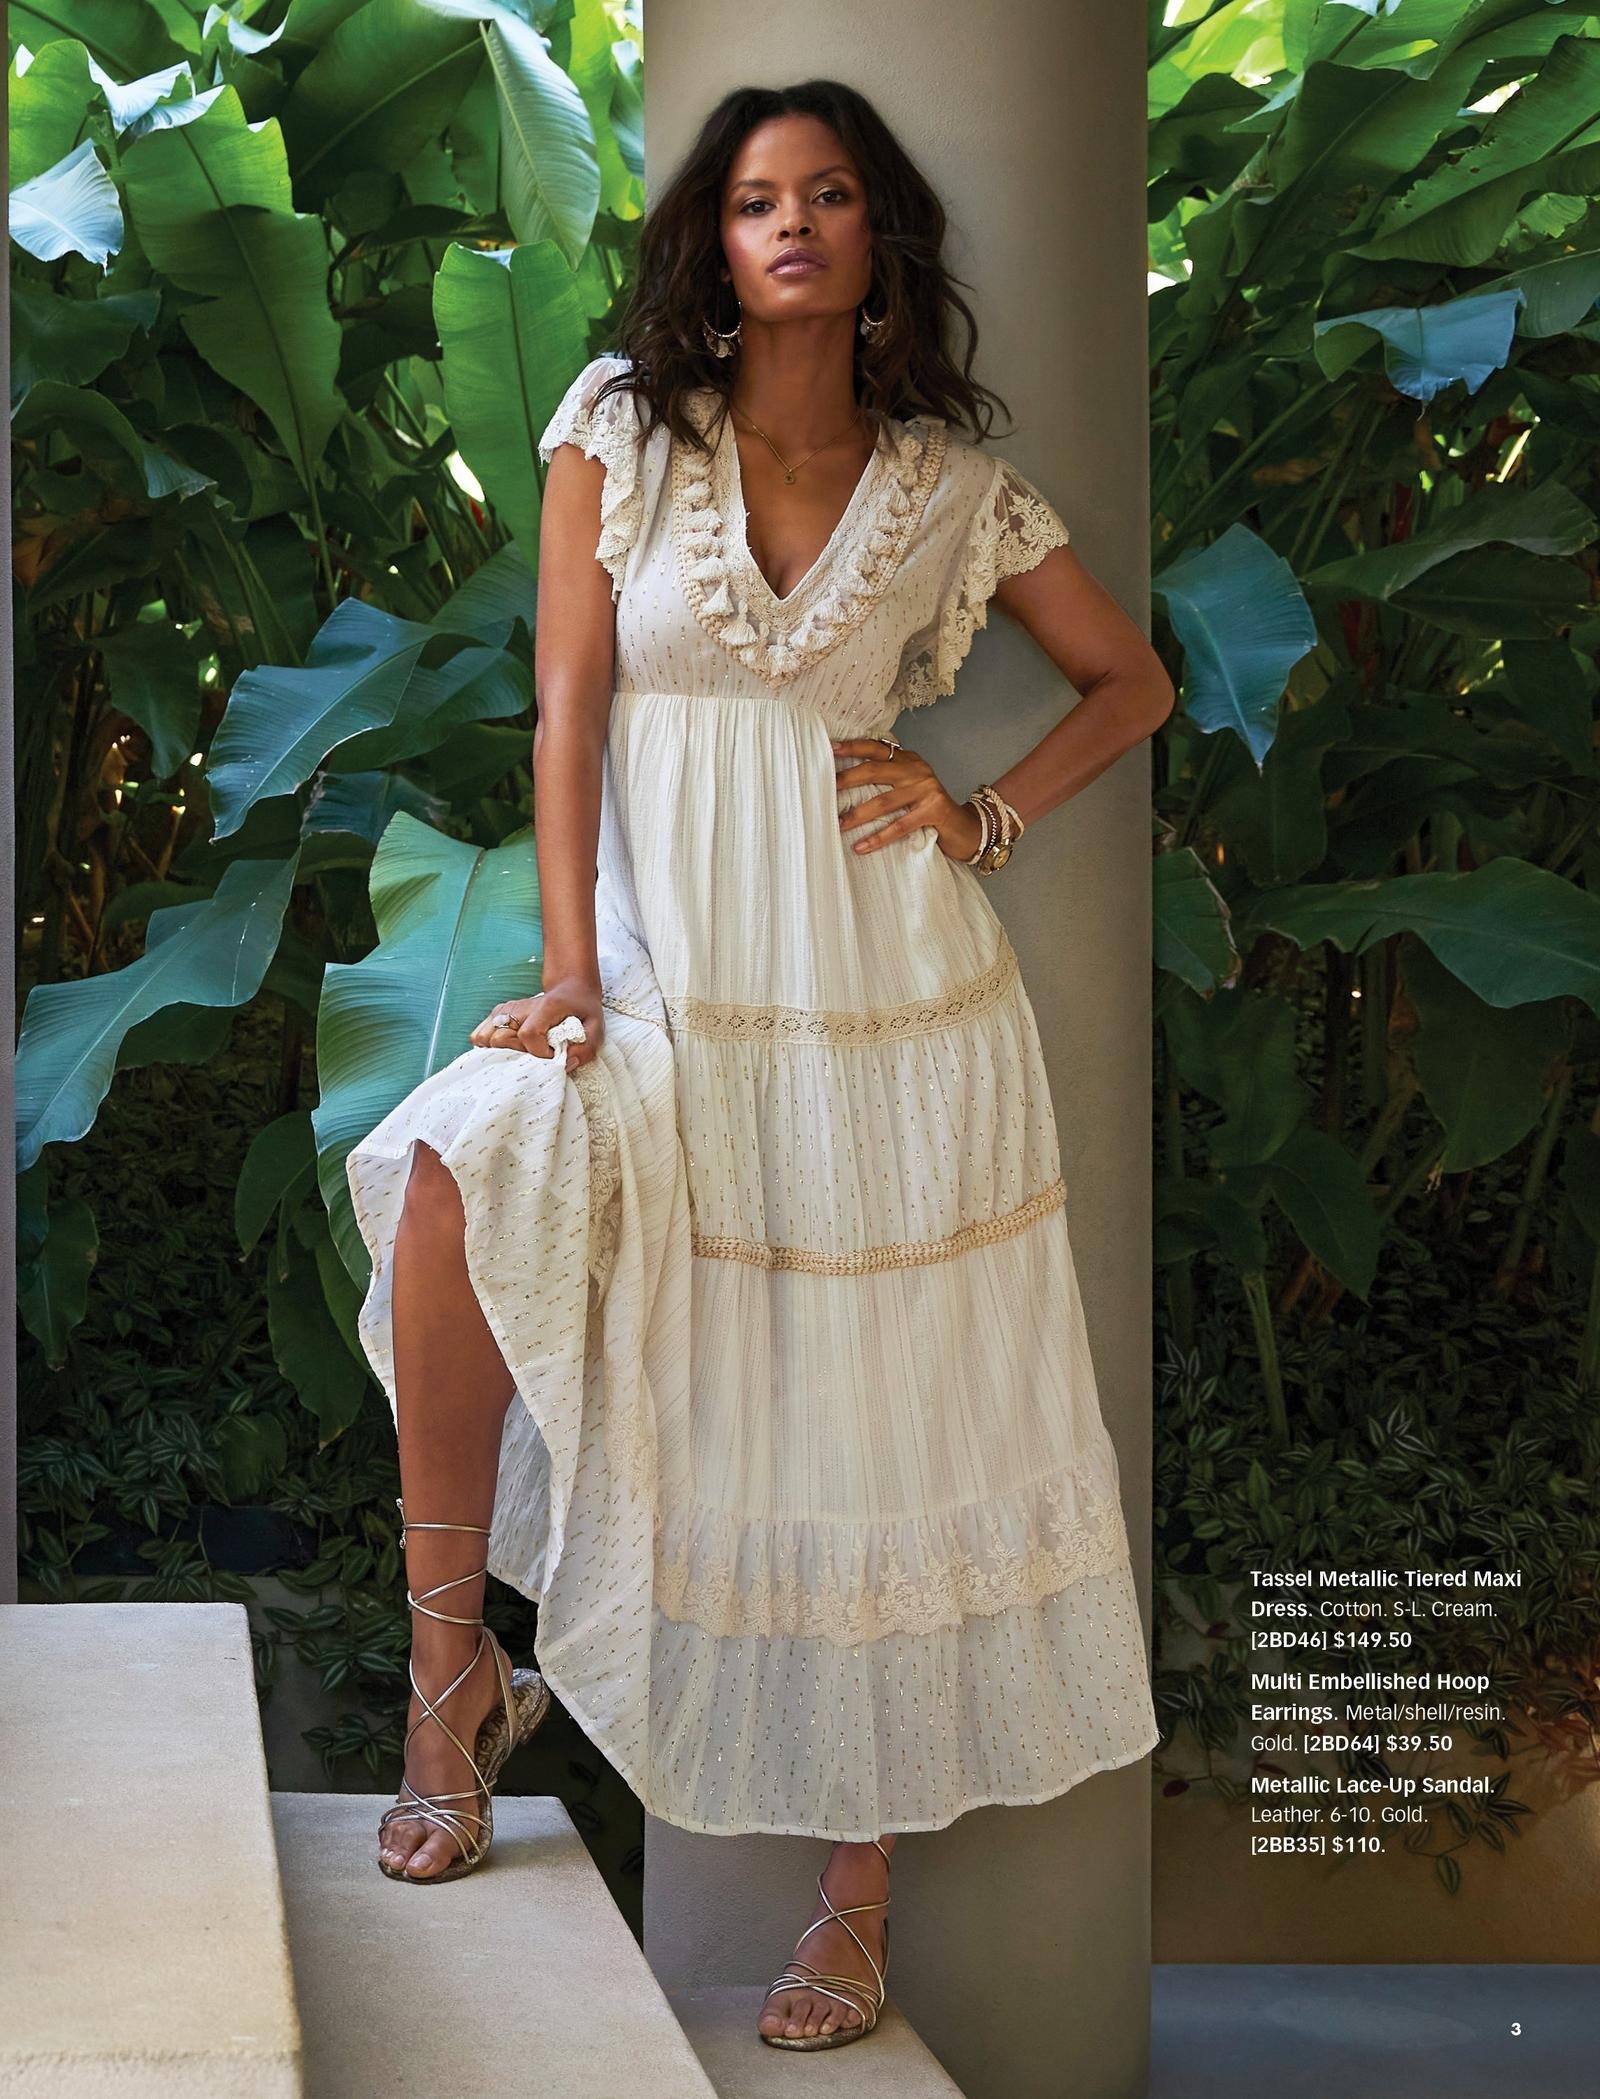 model wearing a cream colored tassel embellished metallic tiered short-sleeve maxi dress, embellished hoop earrings, and gold lace-up sandal.